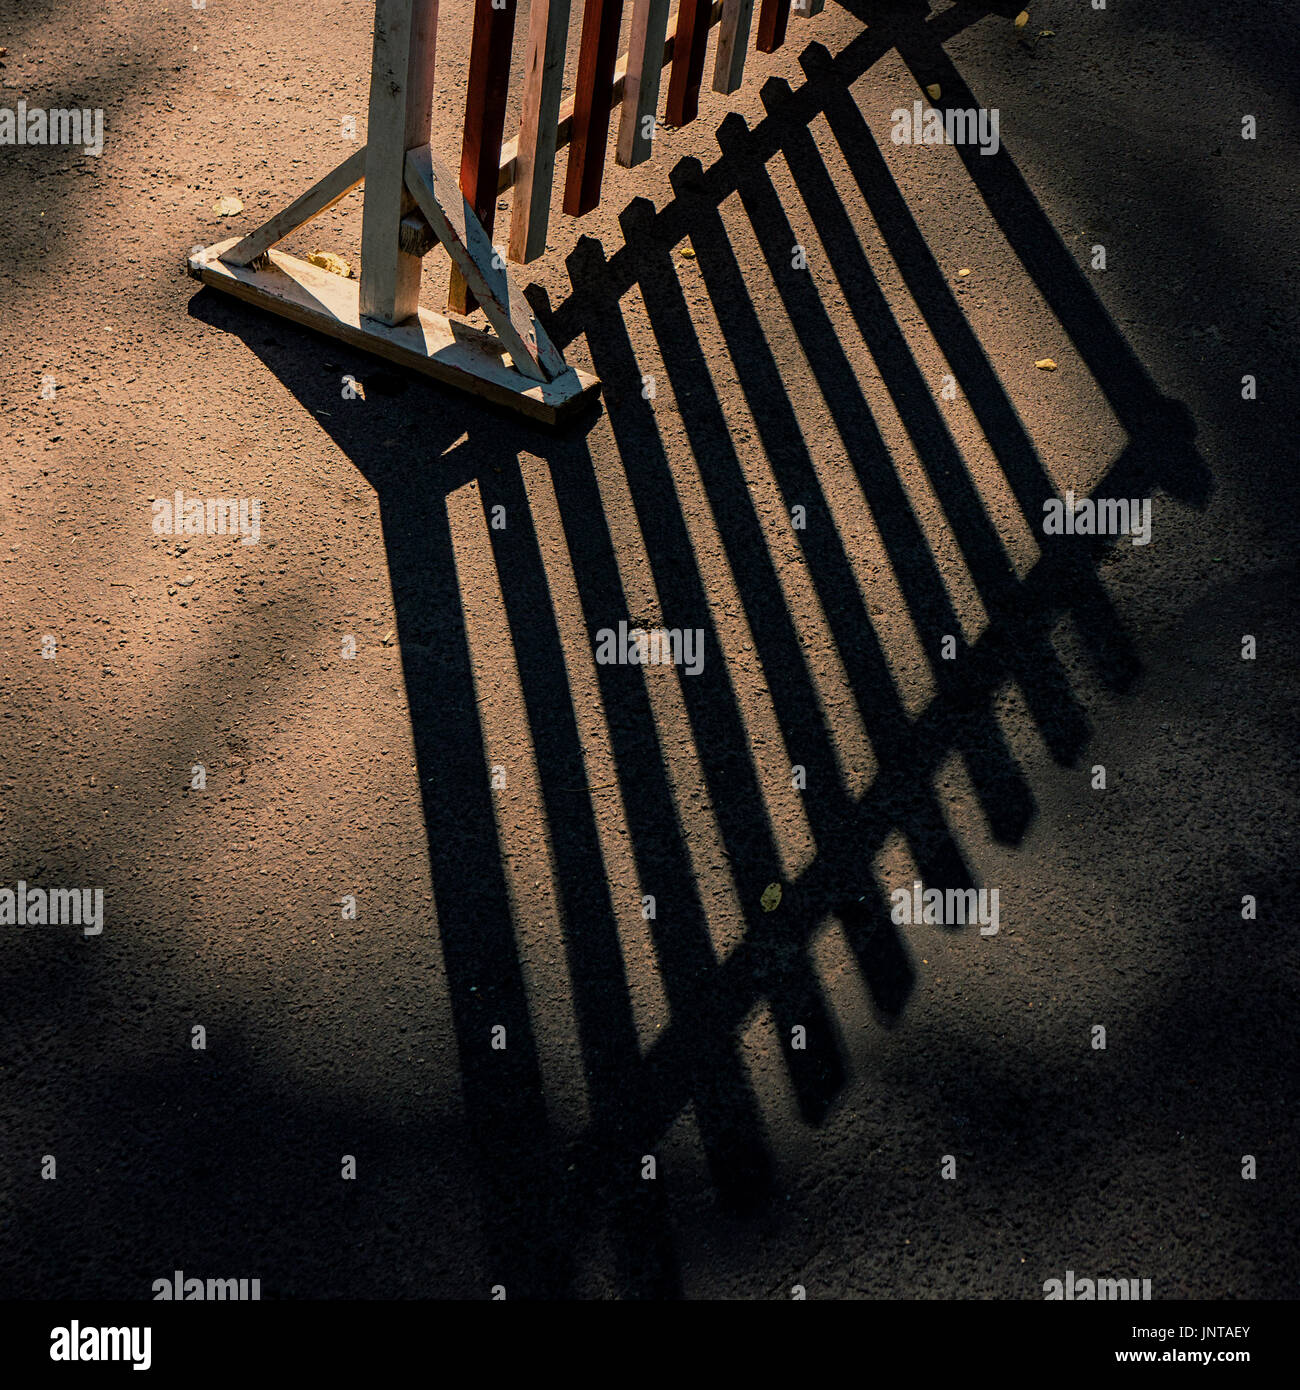 Wooden fence and contrasting shadow on the ground - Stock Image